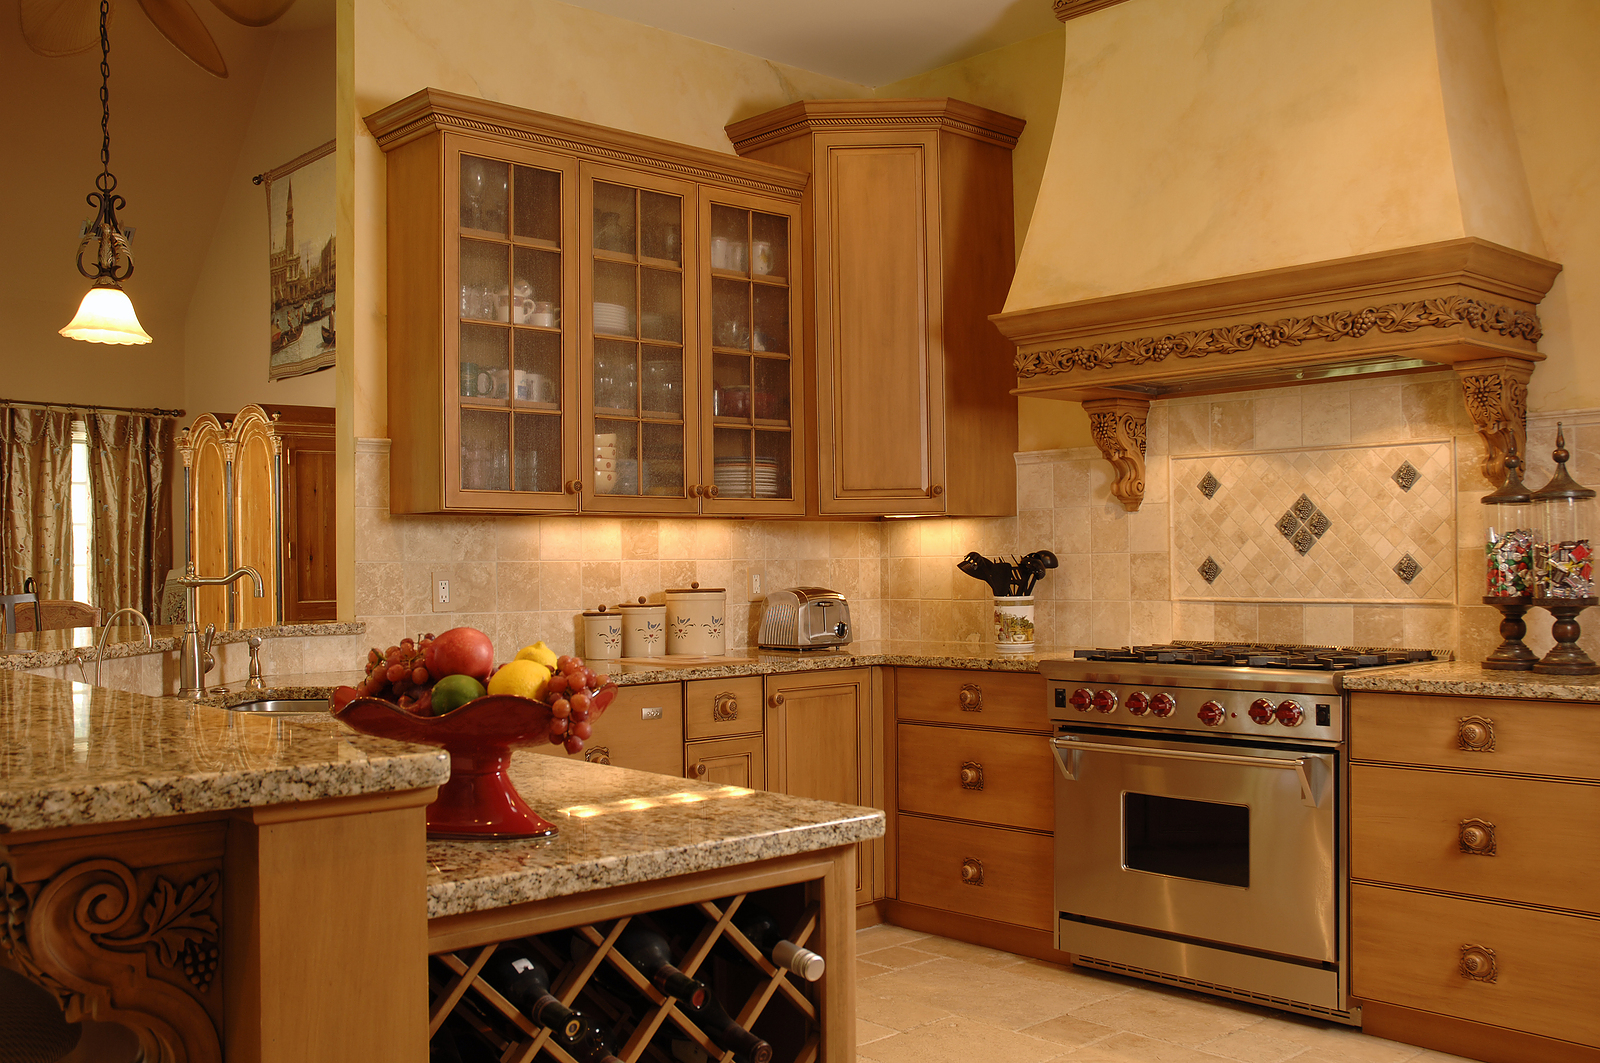 Kitchen Wine Cabinet Donco Designs Is A Pompano Beach Remodeling Contractor